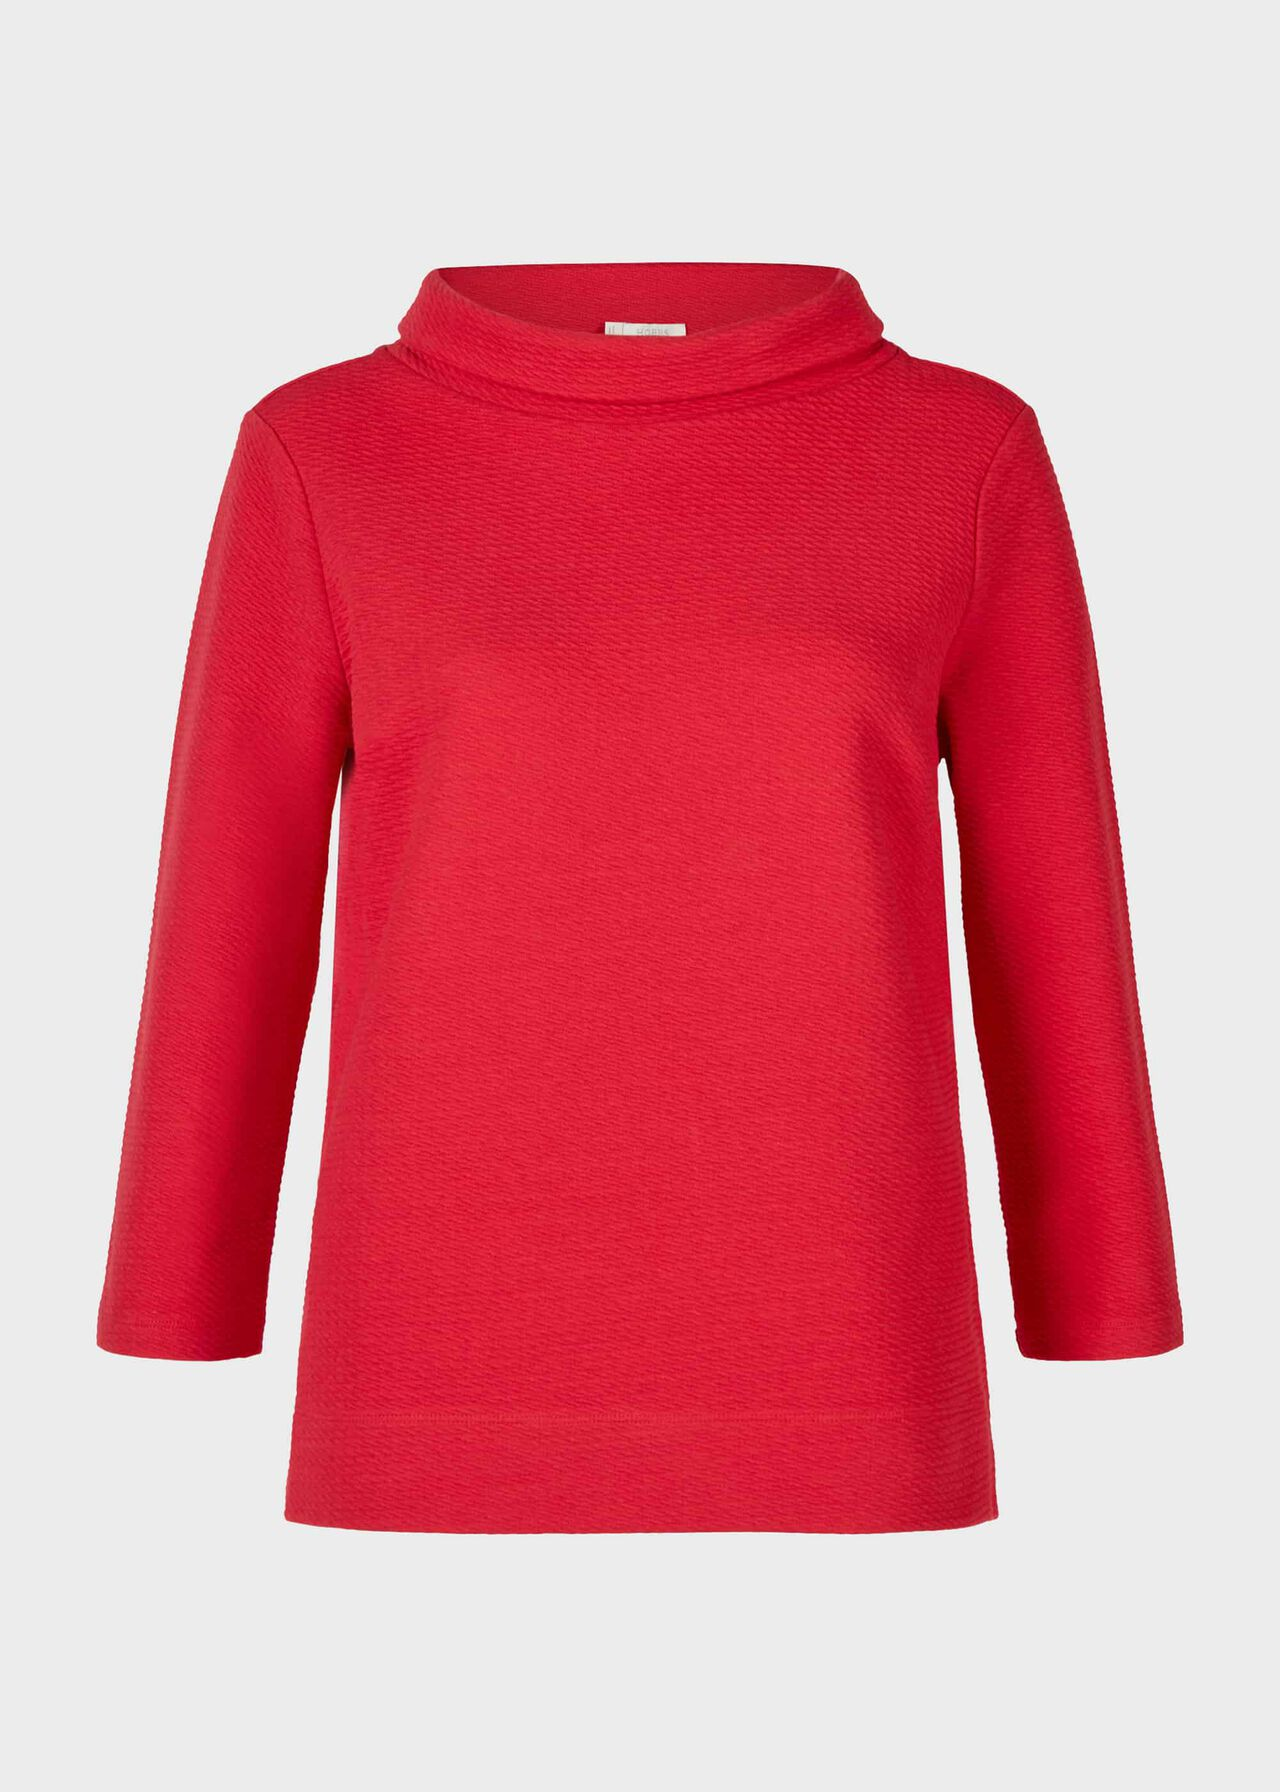 Betsy Textured Top With Cotton Scarlet Red